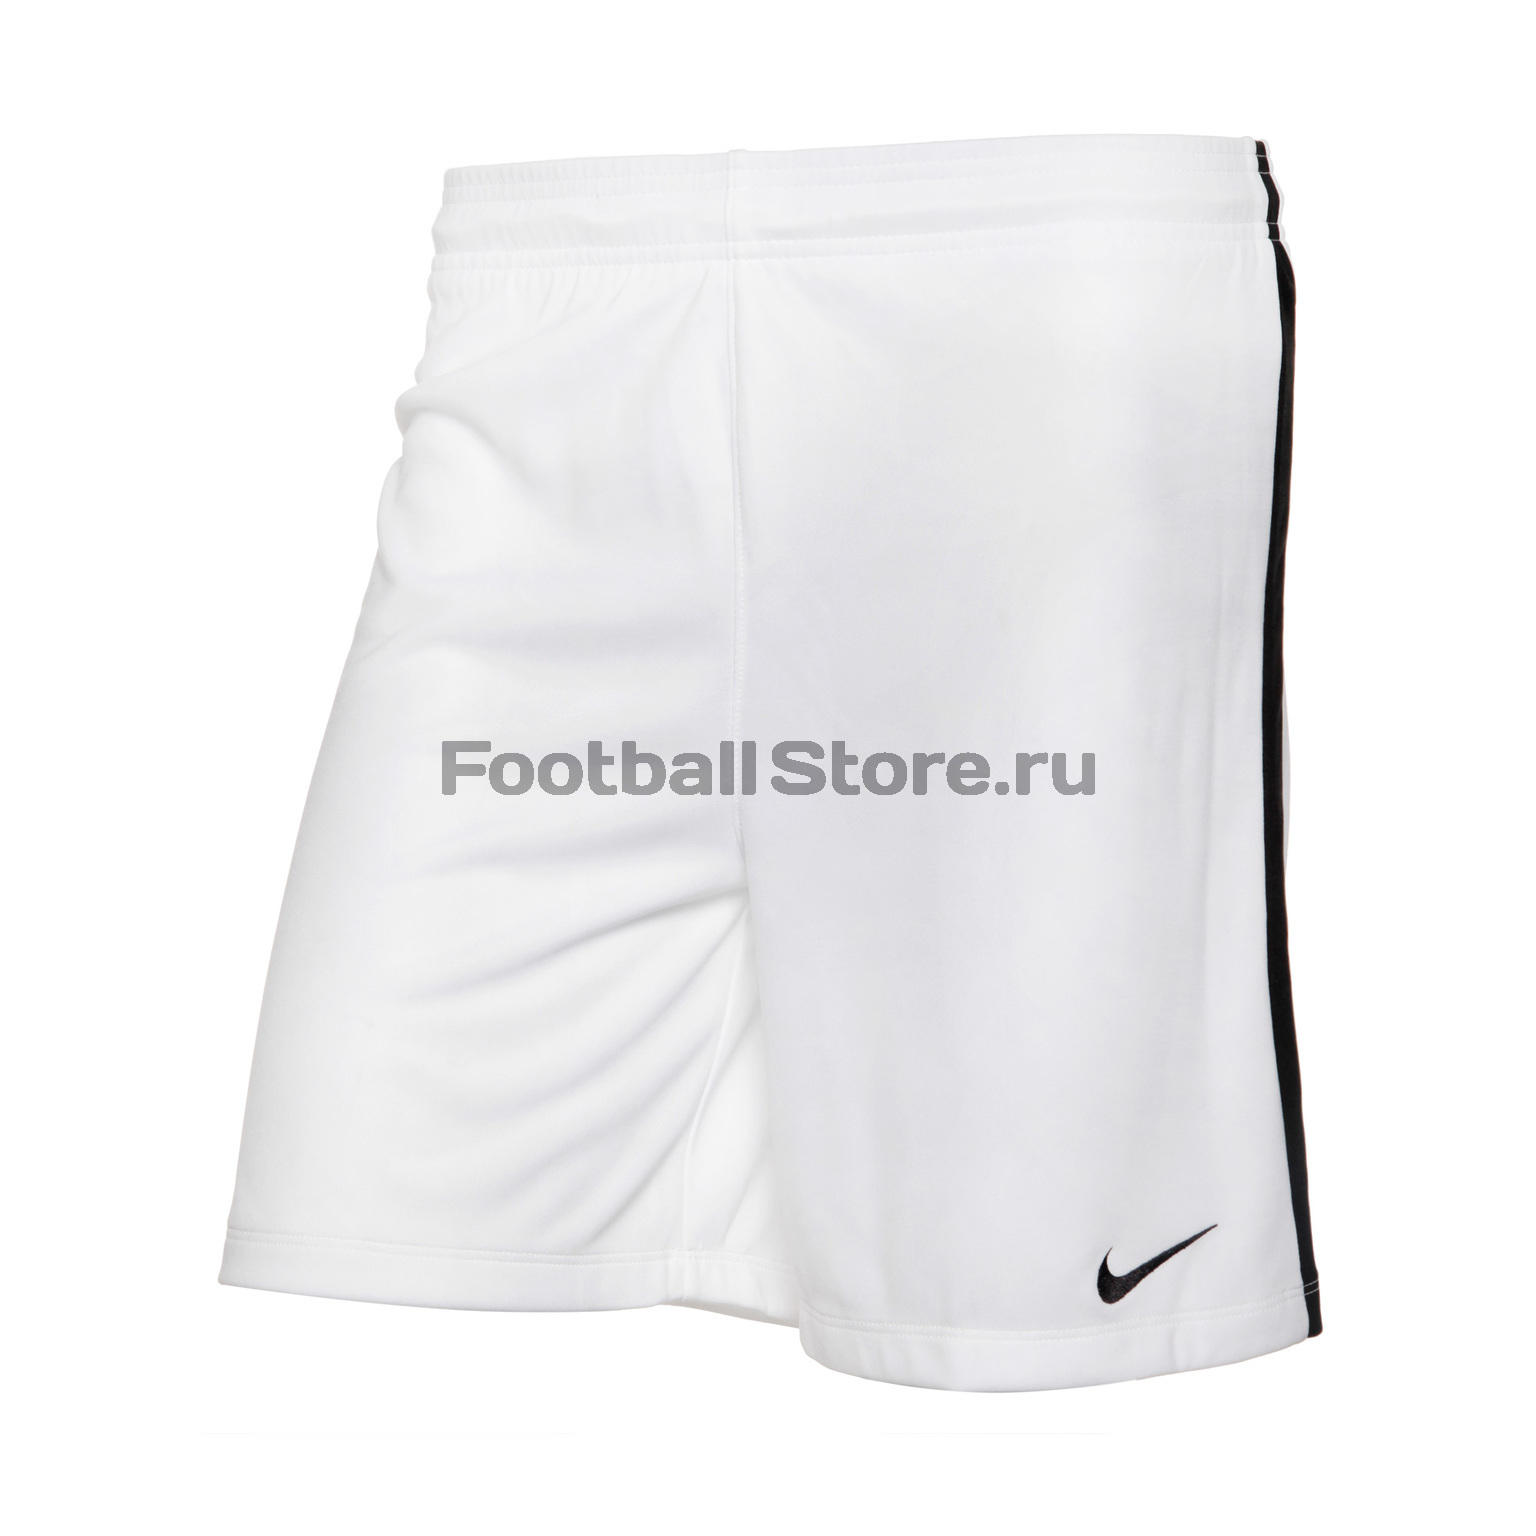 Шорты игровые Nike YTH League Knit Short NB 725990-100